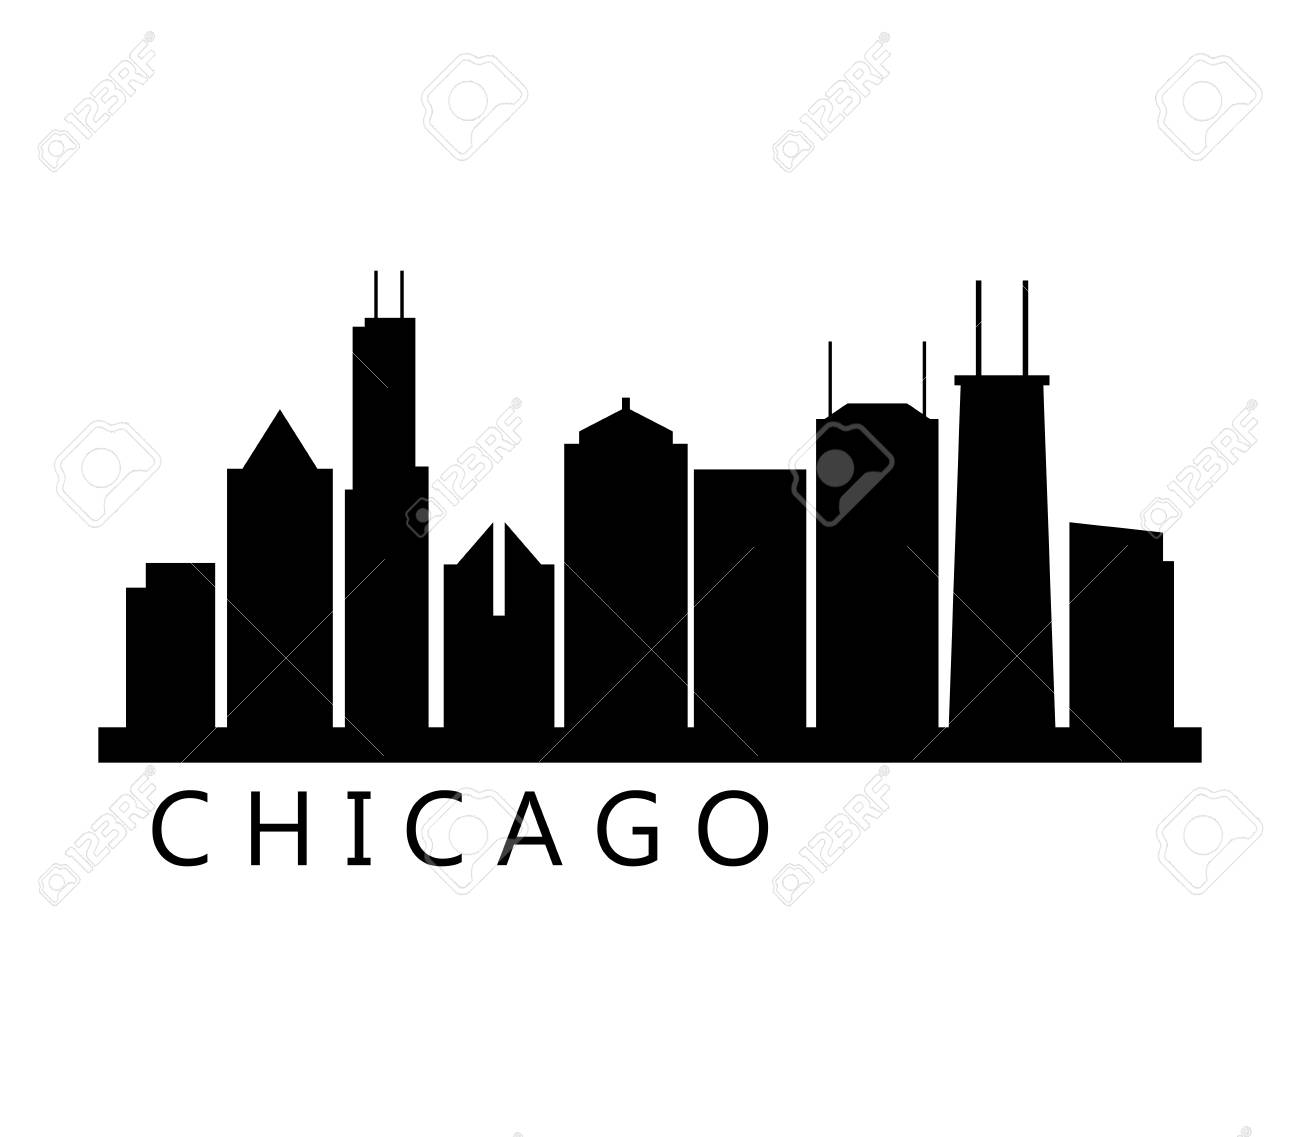 chicago skyline royalty free cliparts vectors and stock rh 123rf com chicago skyline vector art free chicago skyline vector download